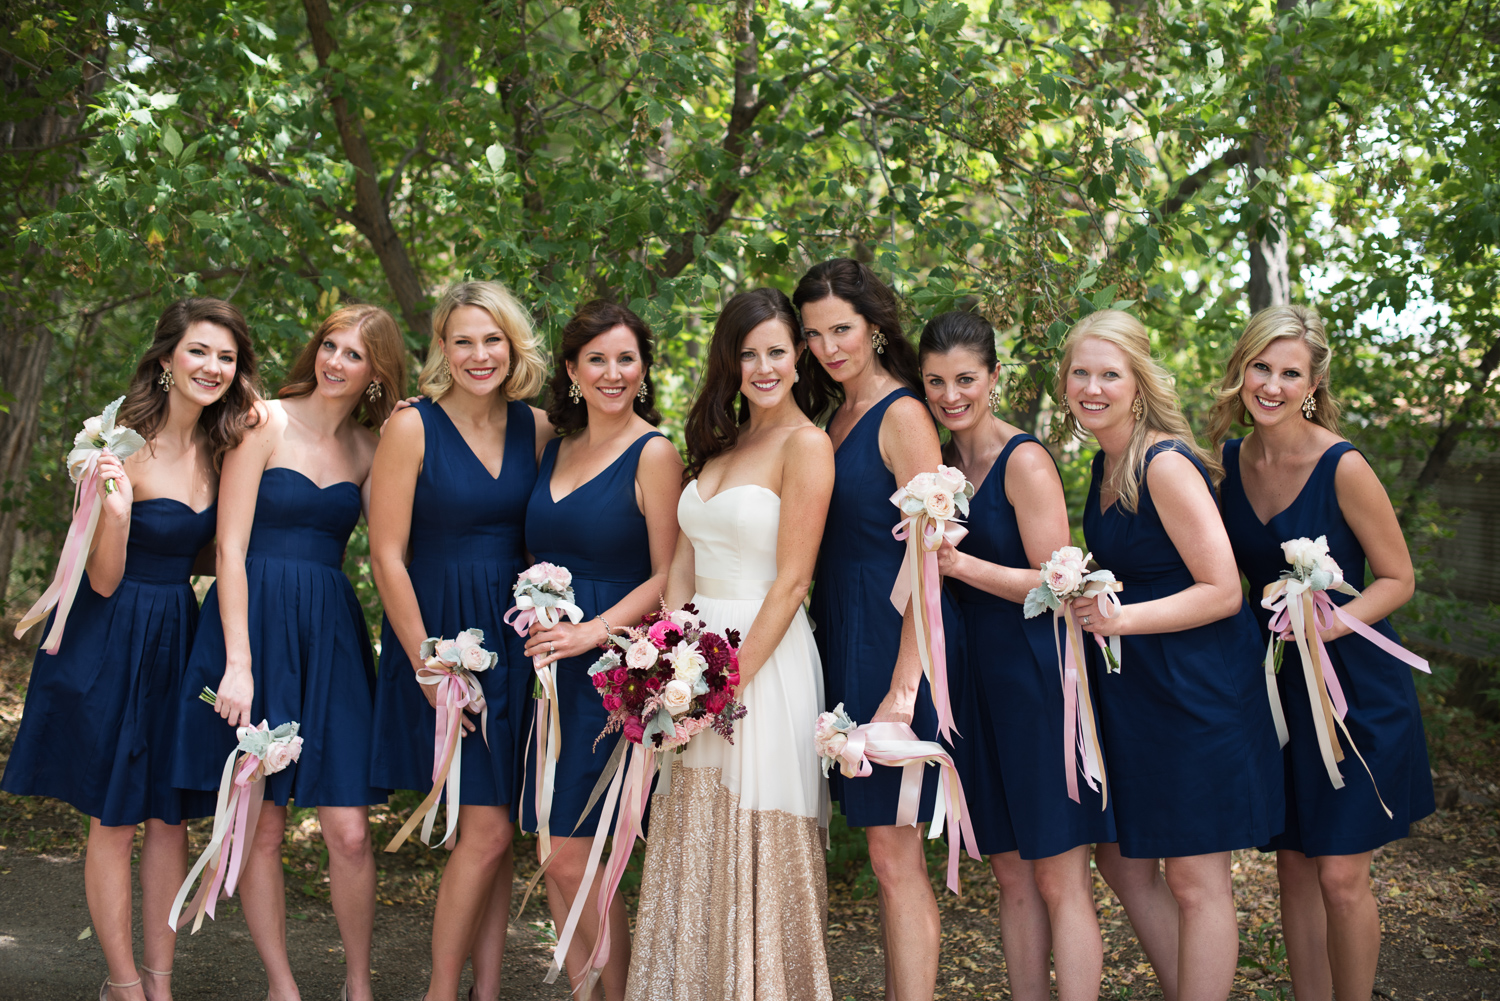 Amanda Kopp Images wedding photo-78.jpg